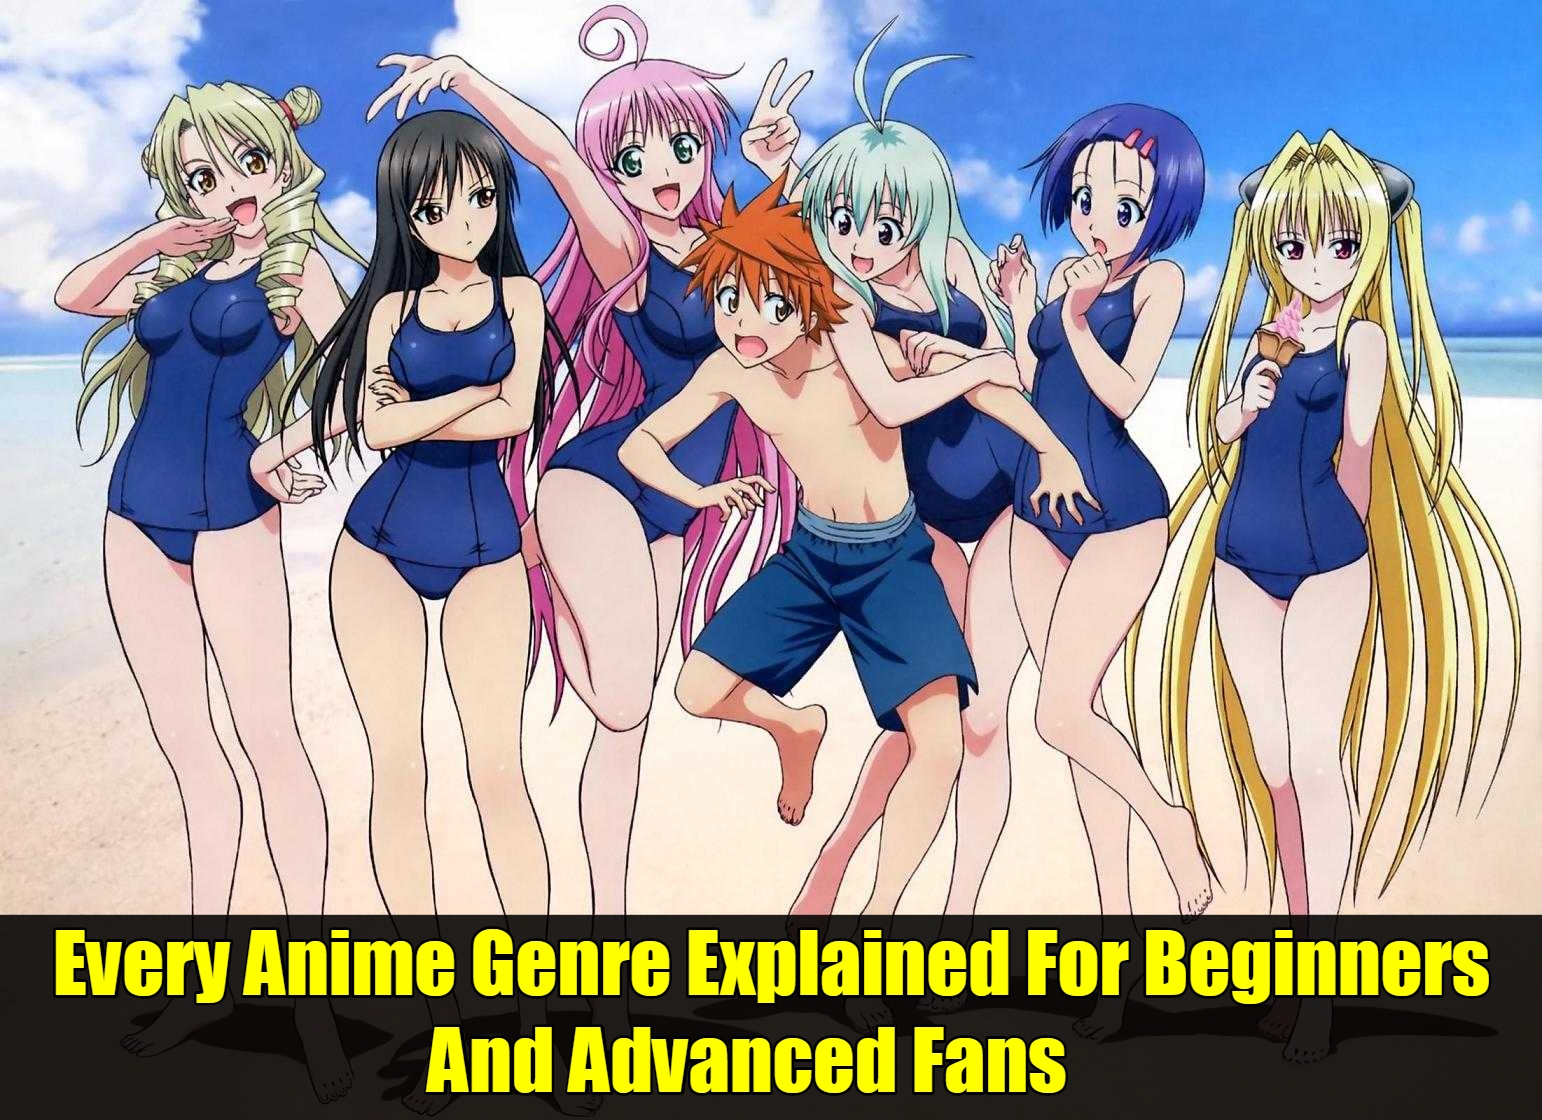 Every Anime Genre Explained For Beginners And Advanced Fans